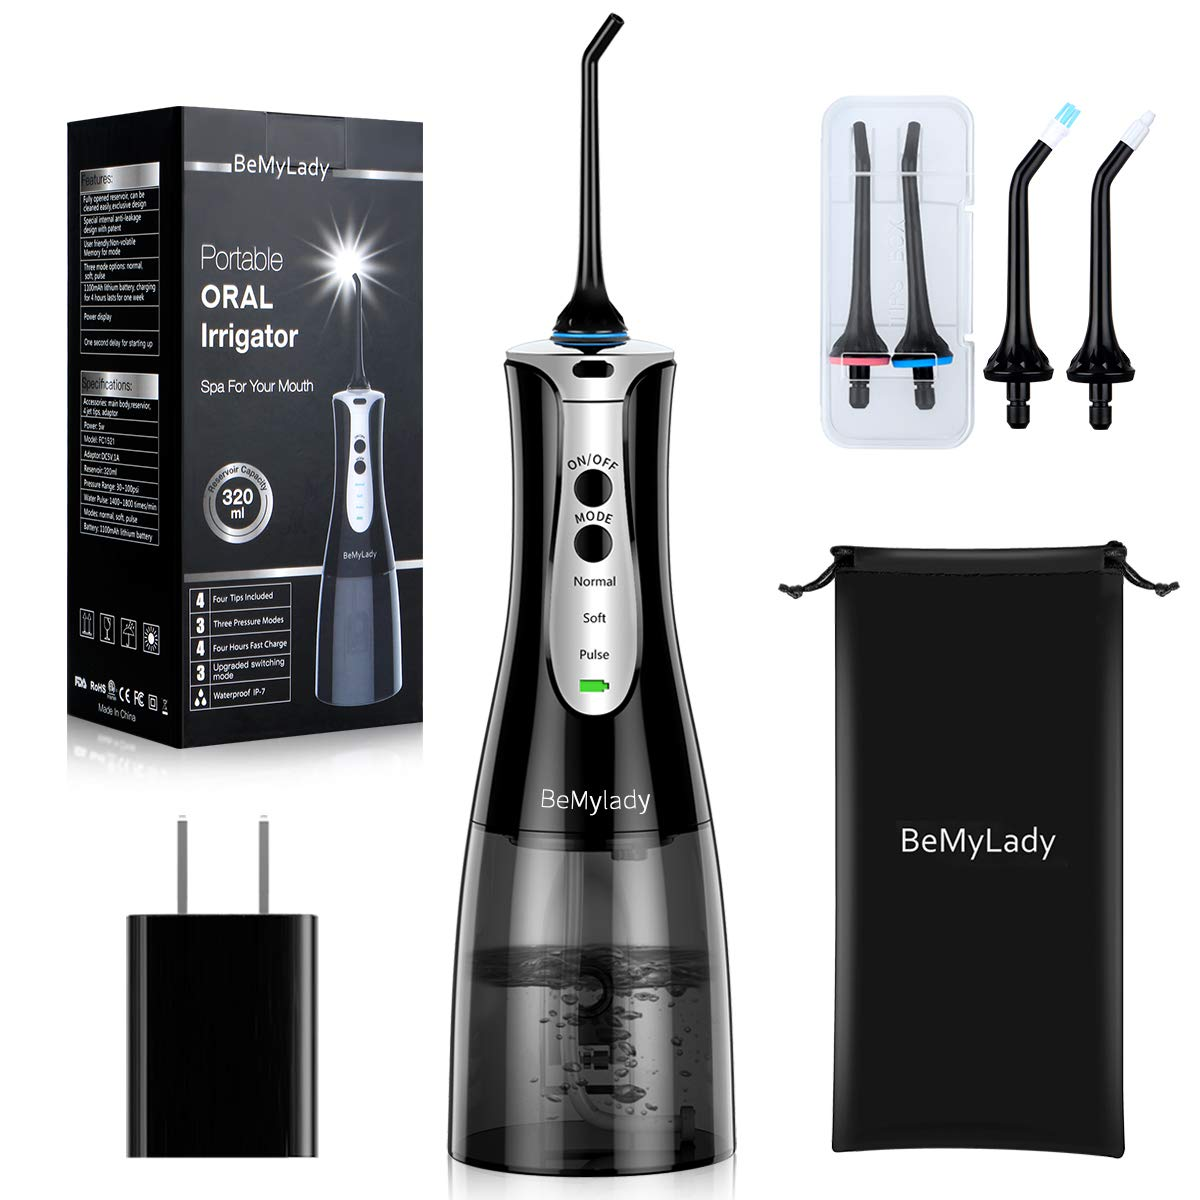 Cordless Water Flosser Pick Teeth Cleaner, BeMyLady 320ML Portable Water Flosser Pik Oral Irrigator for Travel, Home IPX7 Waterproof Water Dental Flosser with 4 Jet Tips for Braces and Teeth Whitening